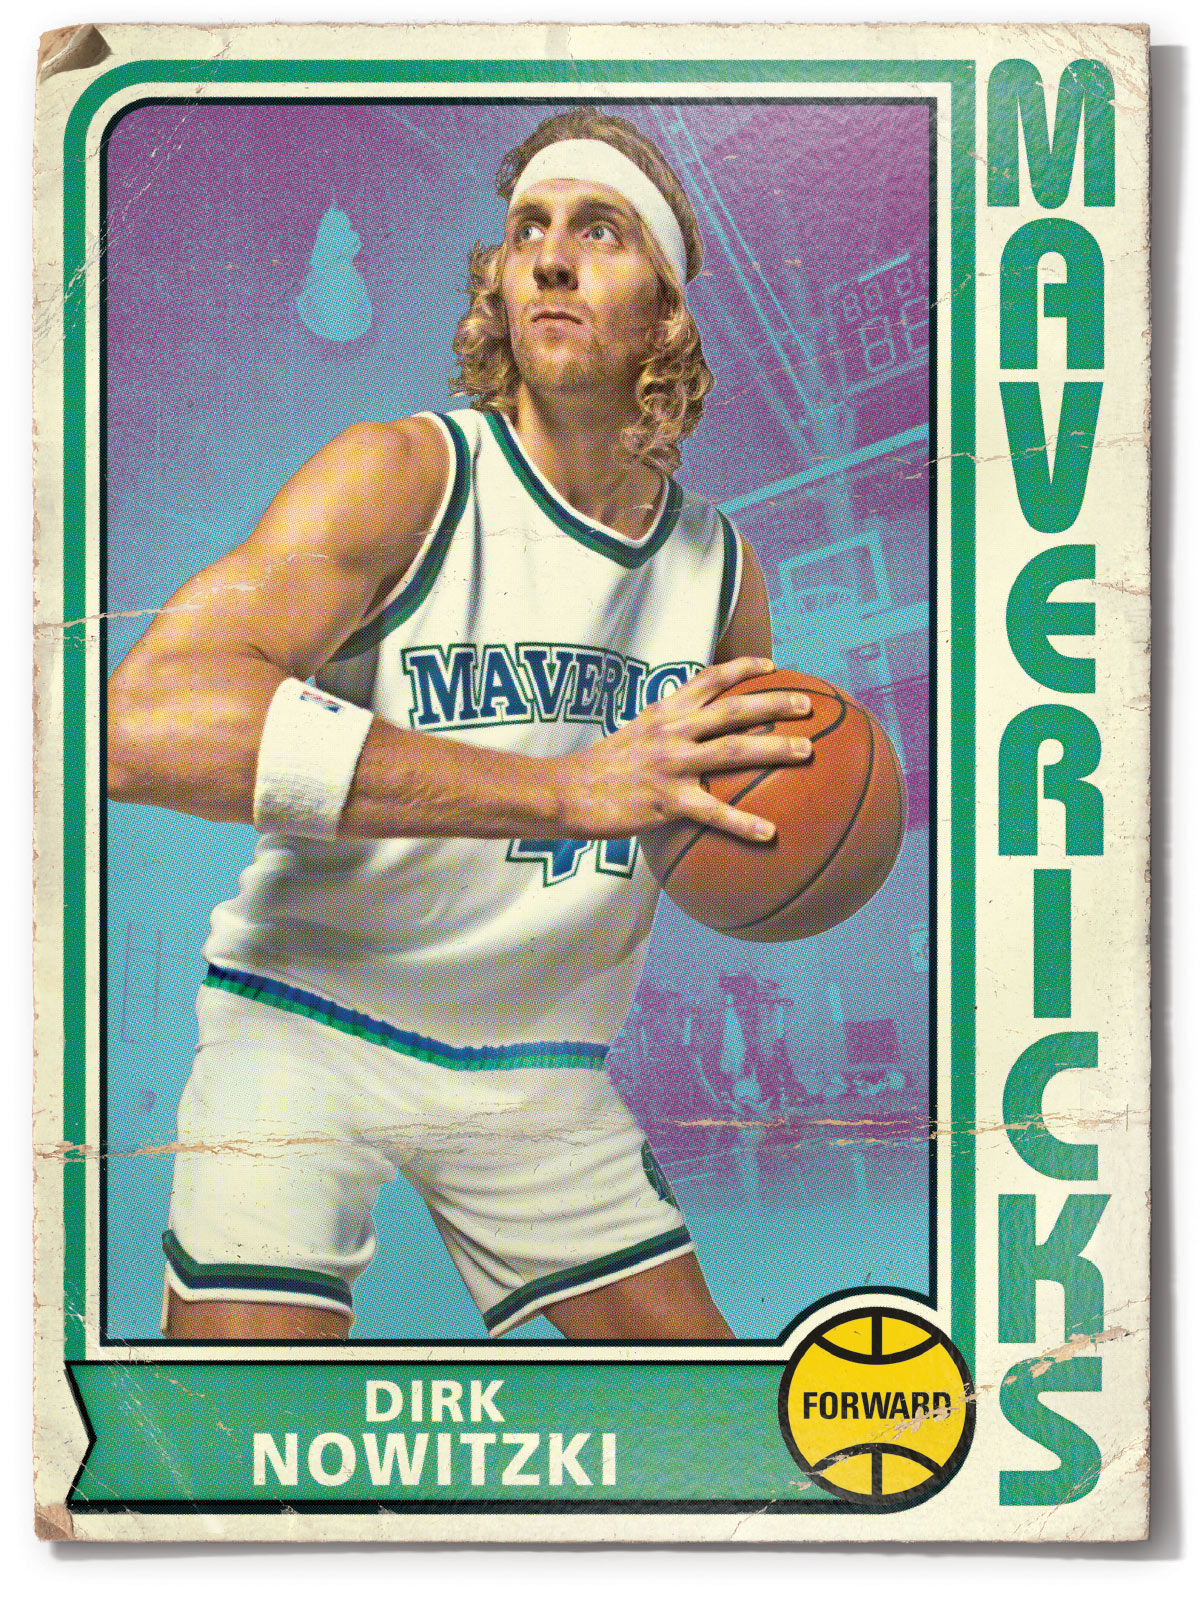 Dirk Nowitzki, Dallas Mavericks Forward